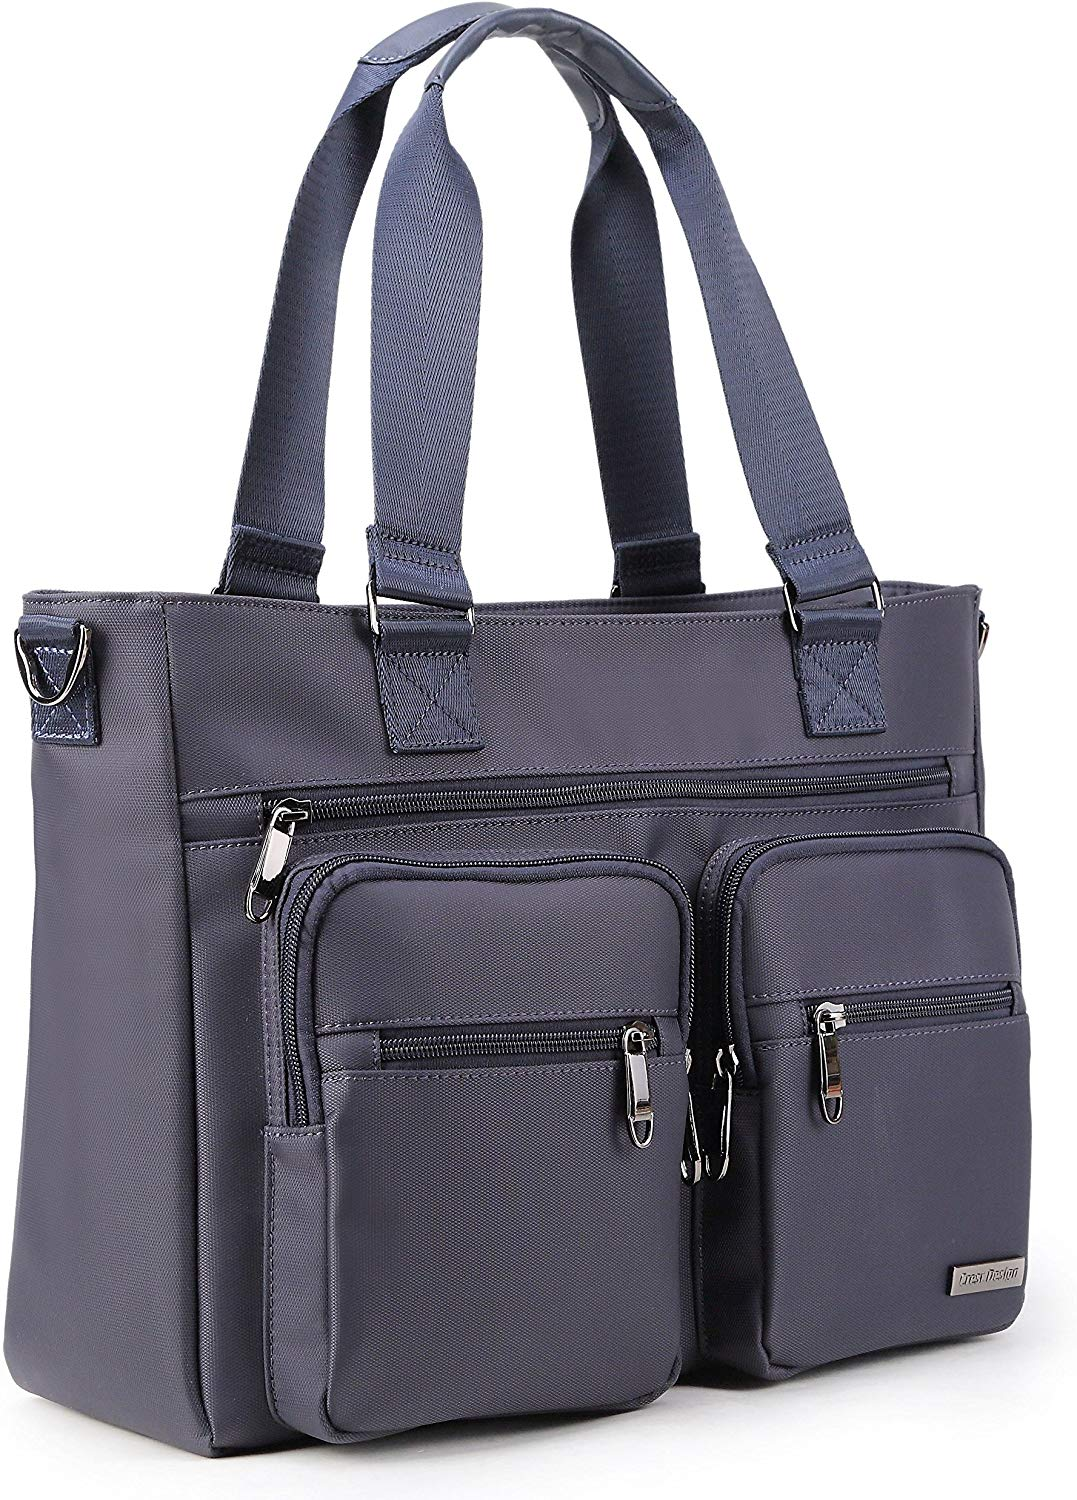 best bag for medical student